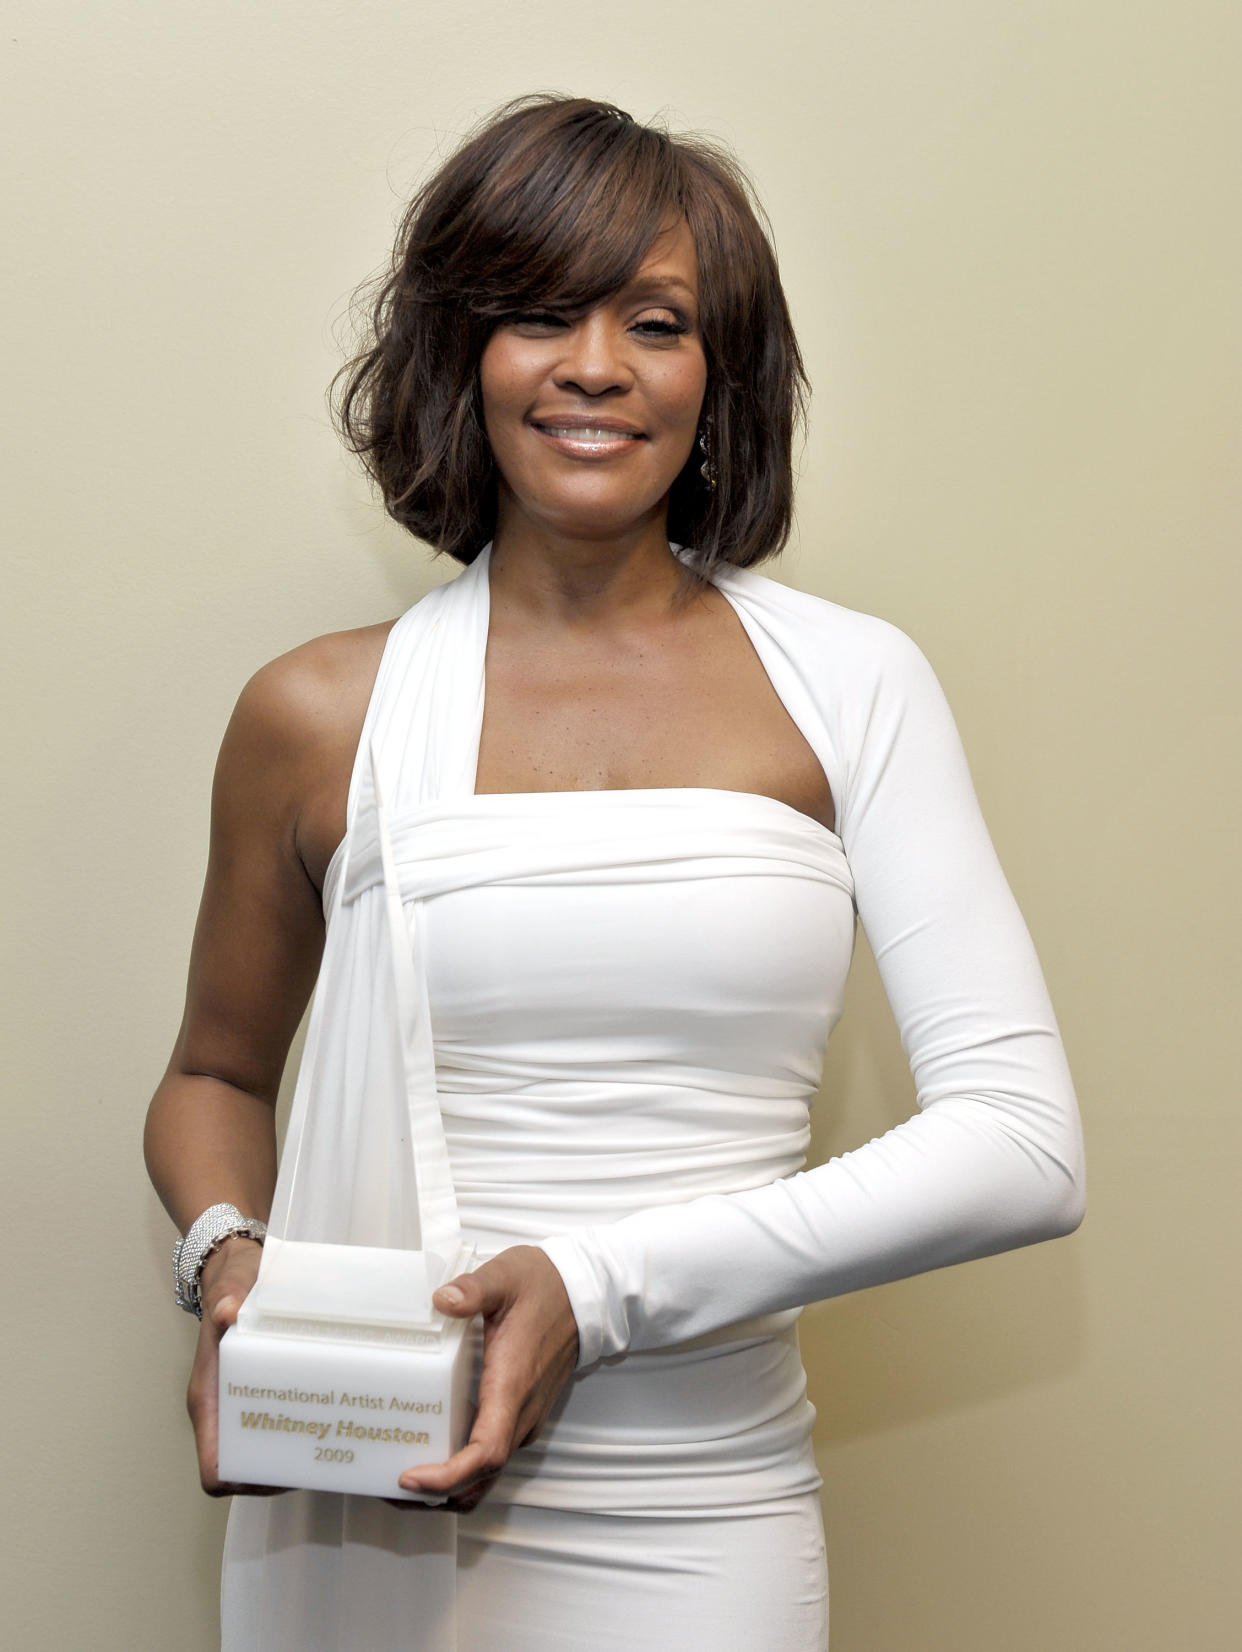 LOS ANGELES, CA - NOVEMBER 22:  Singer Whitney Houston poses with the Winner of International - Favorite Artist Award backstage at the 2009 American Music Awards at Nokia Theatre L.A. Live on November 22, 2009 in Los Angeles, California.  (Photo by Charley Gallay/AMA2009/Getty Images for DCP)